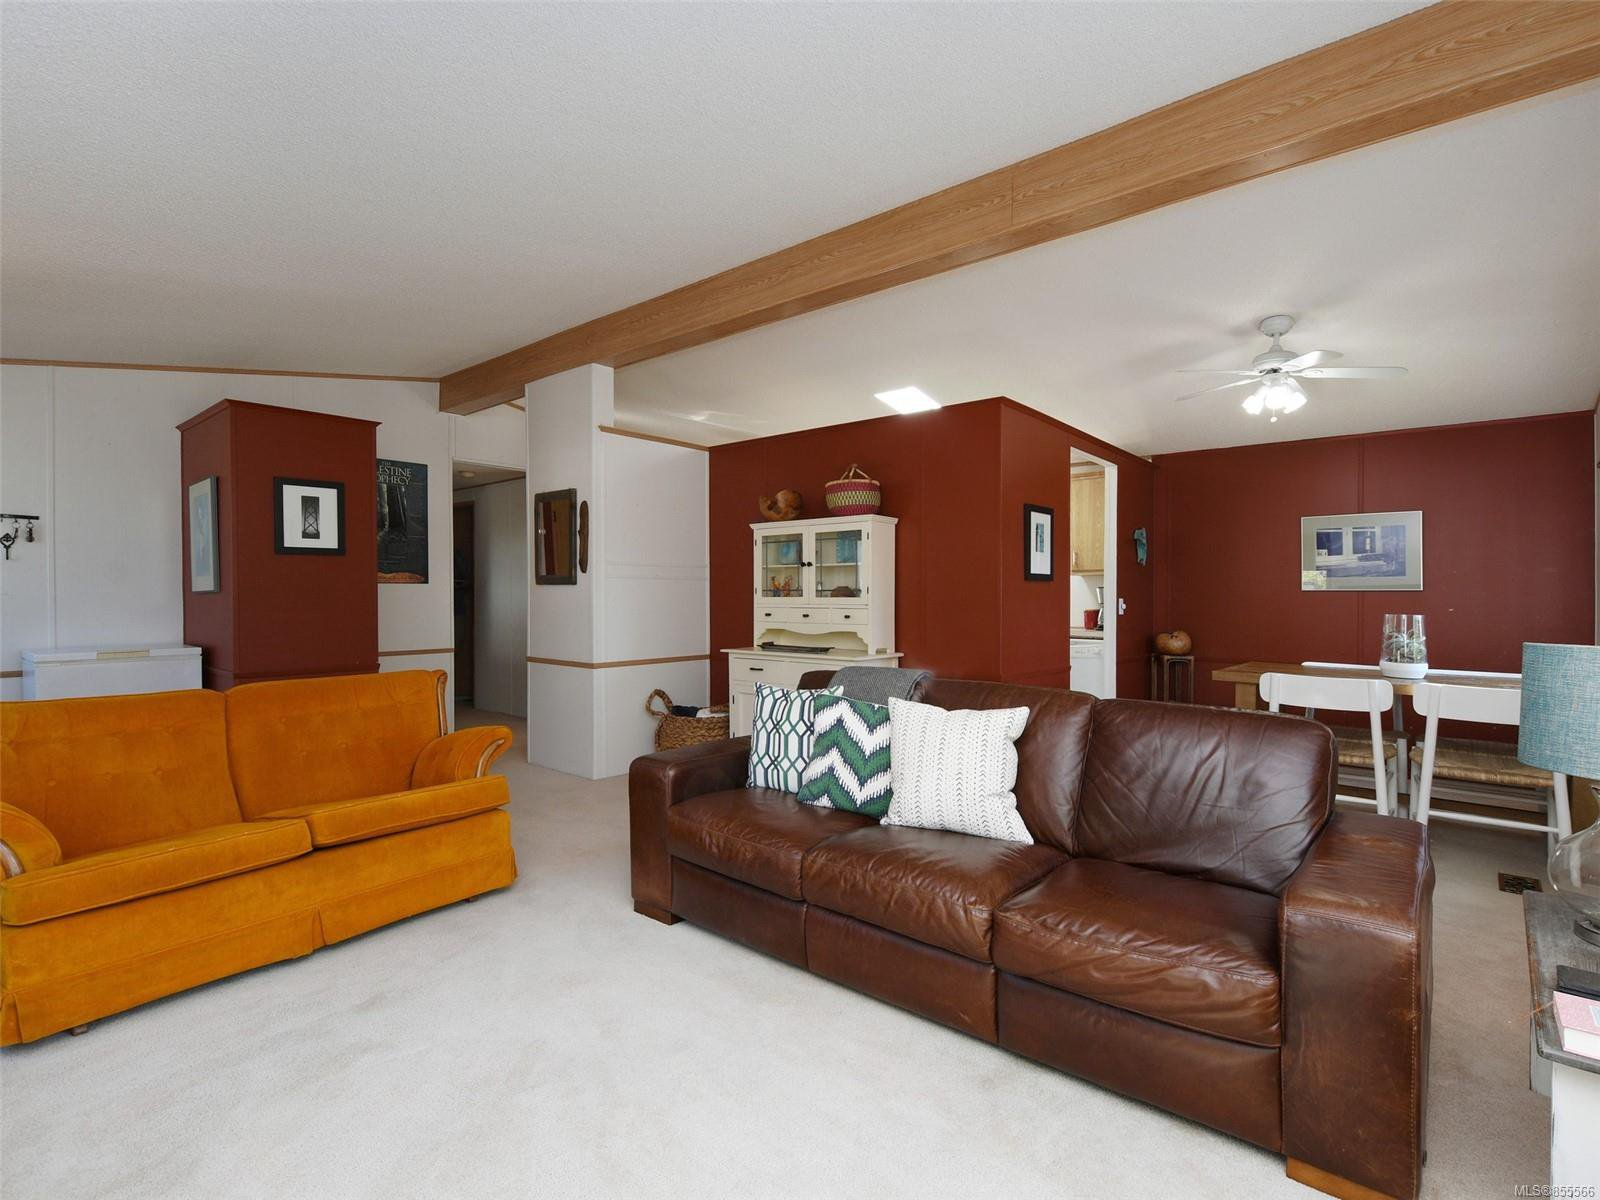 Photo 5: Photos: 28 7021 W Grant Rd in : Sk John Muir Manufactured Home for sale (Sooke)  : MLS®# 855566